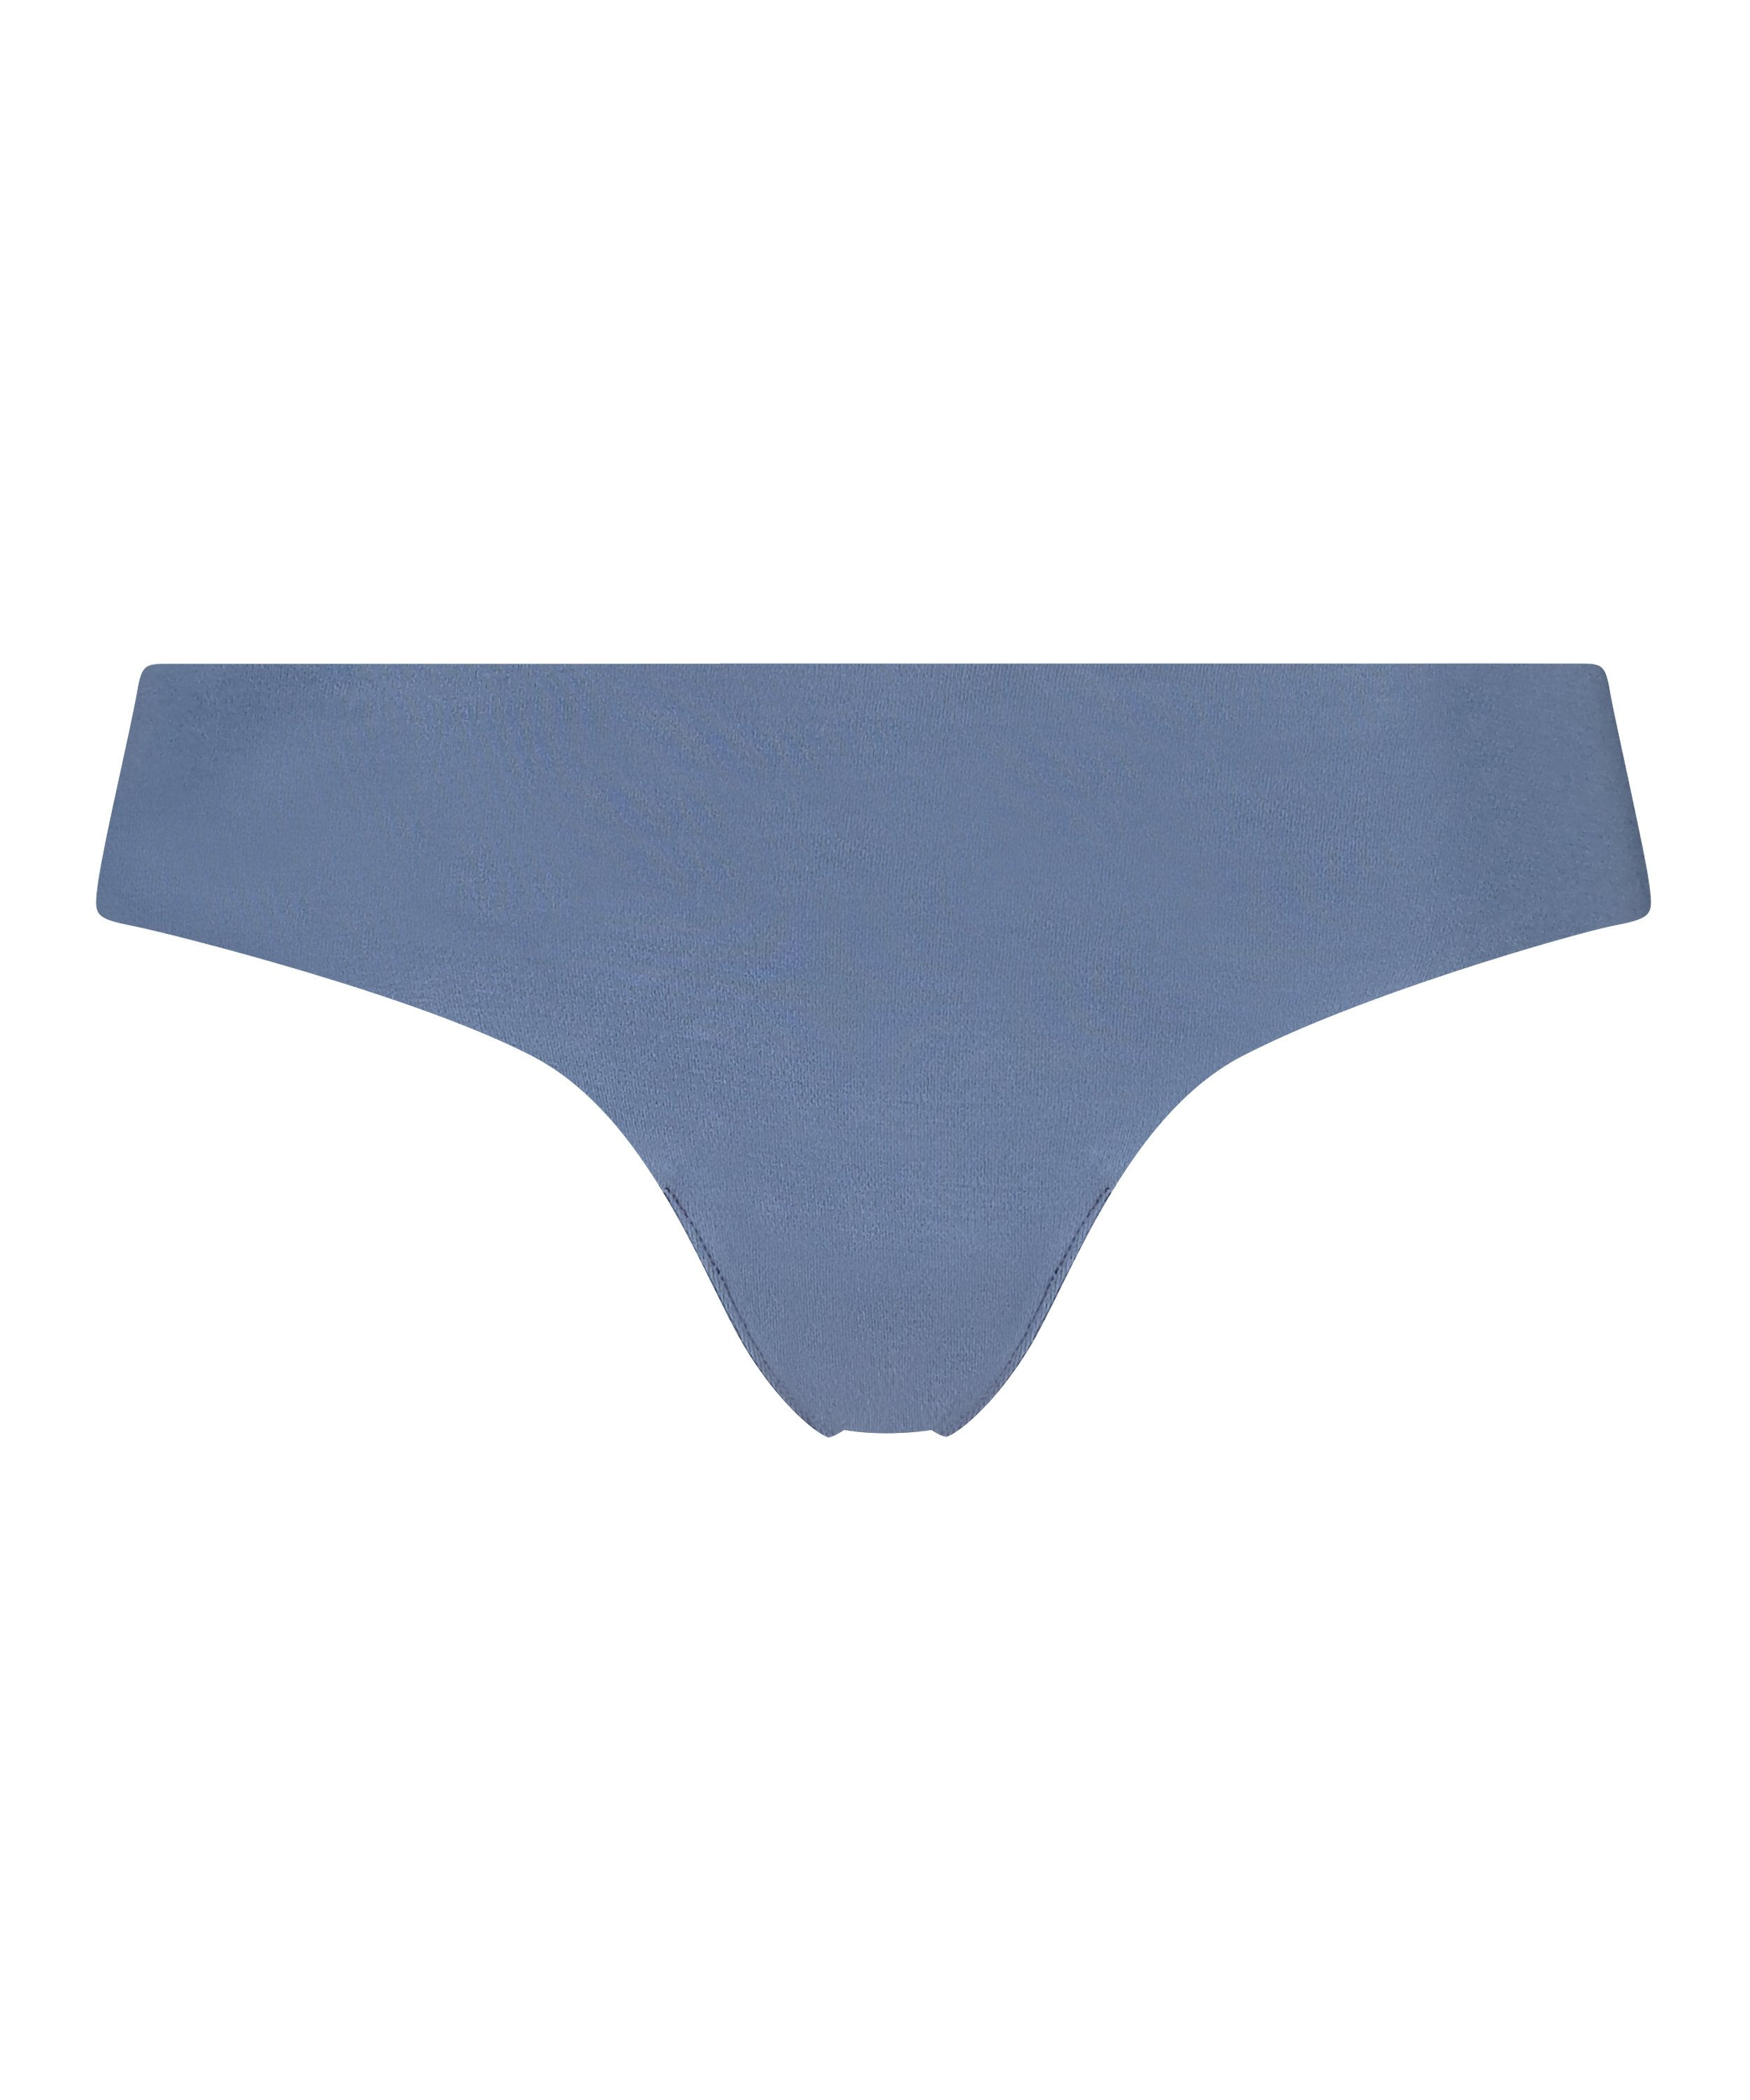 Invisible cotton thong, Blue, main